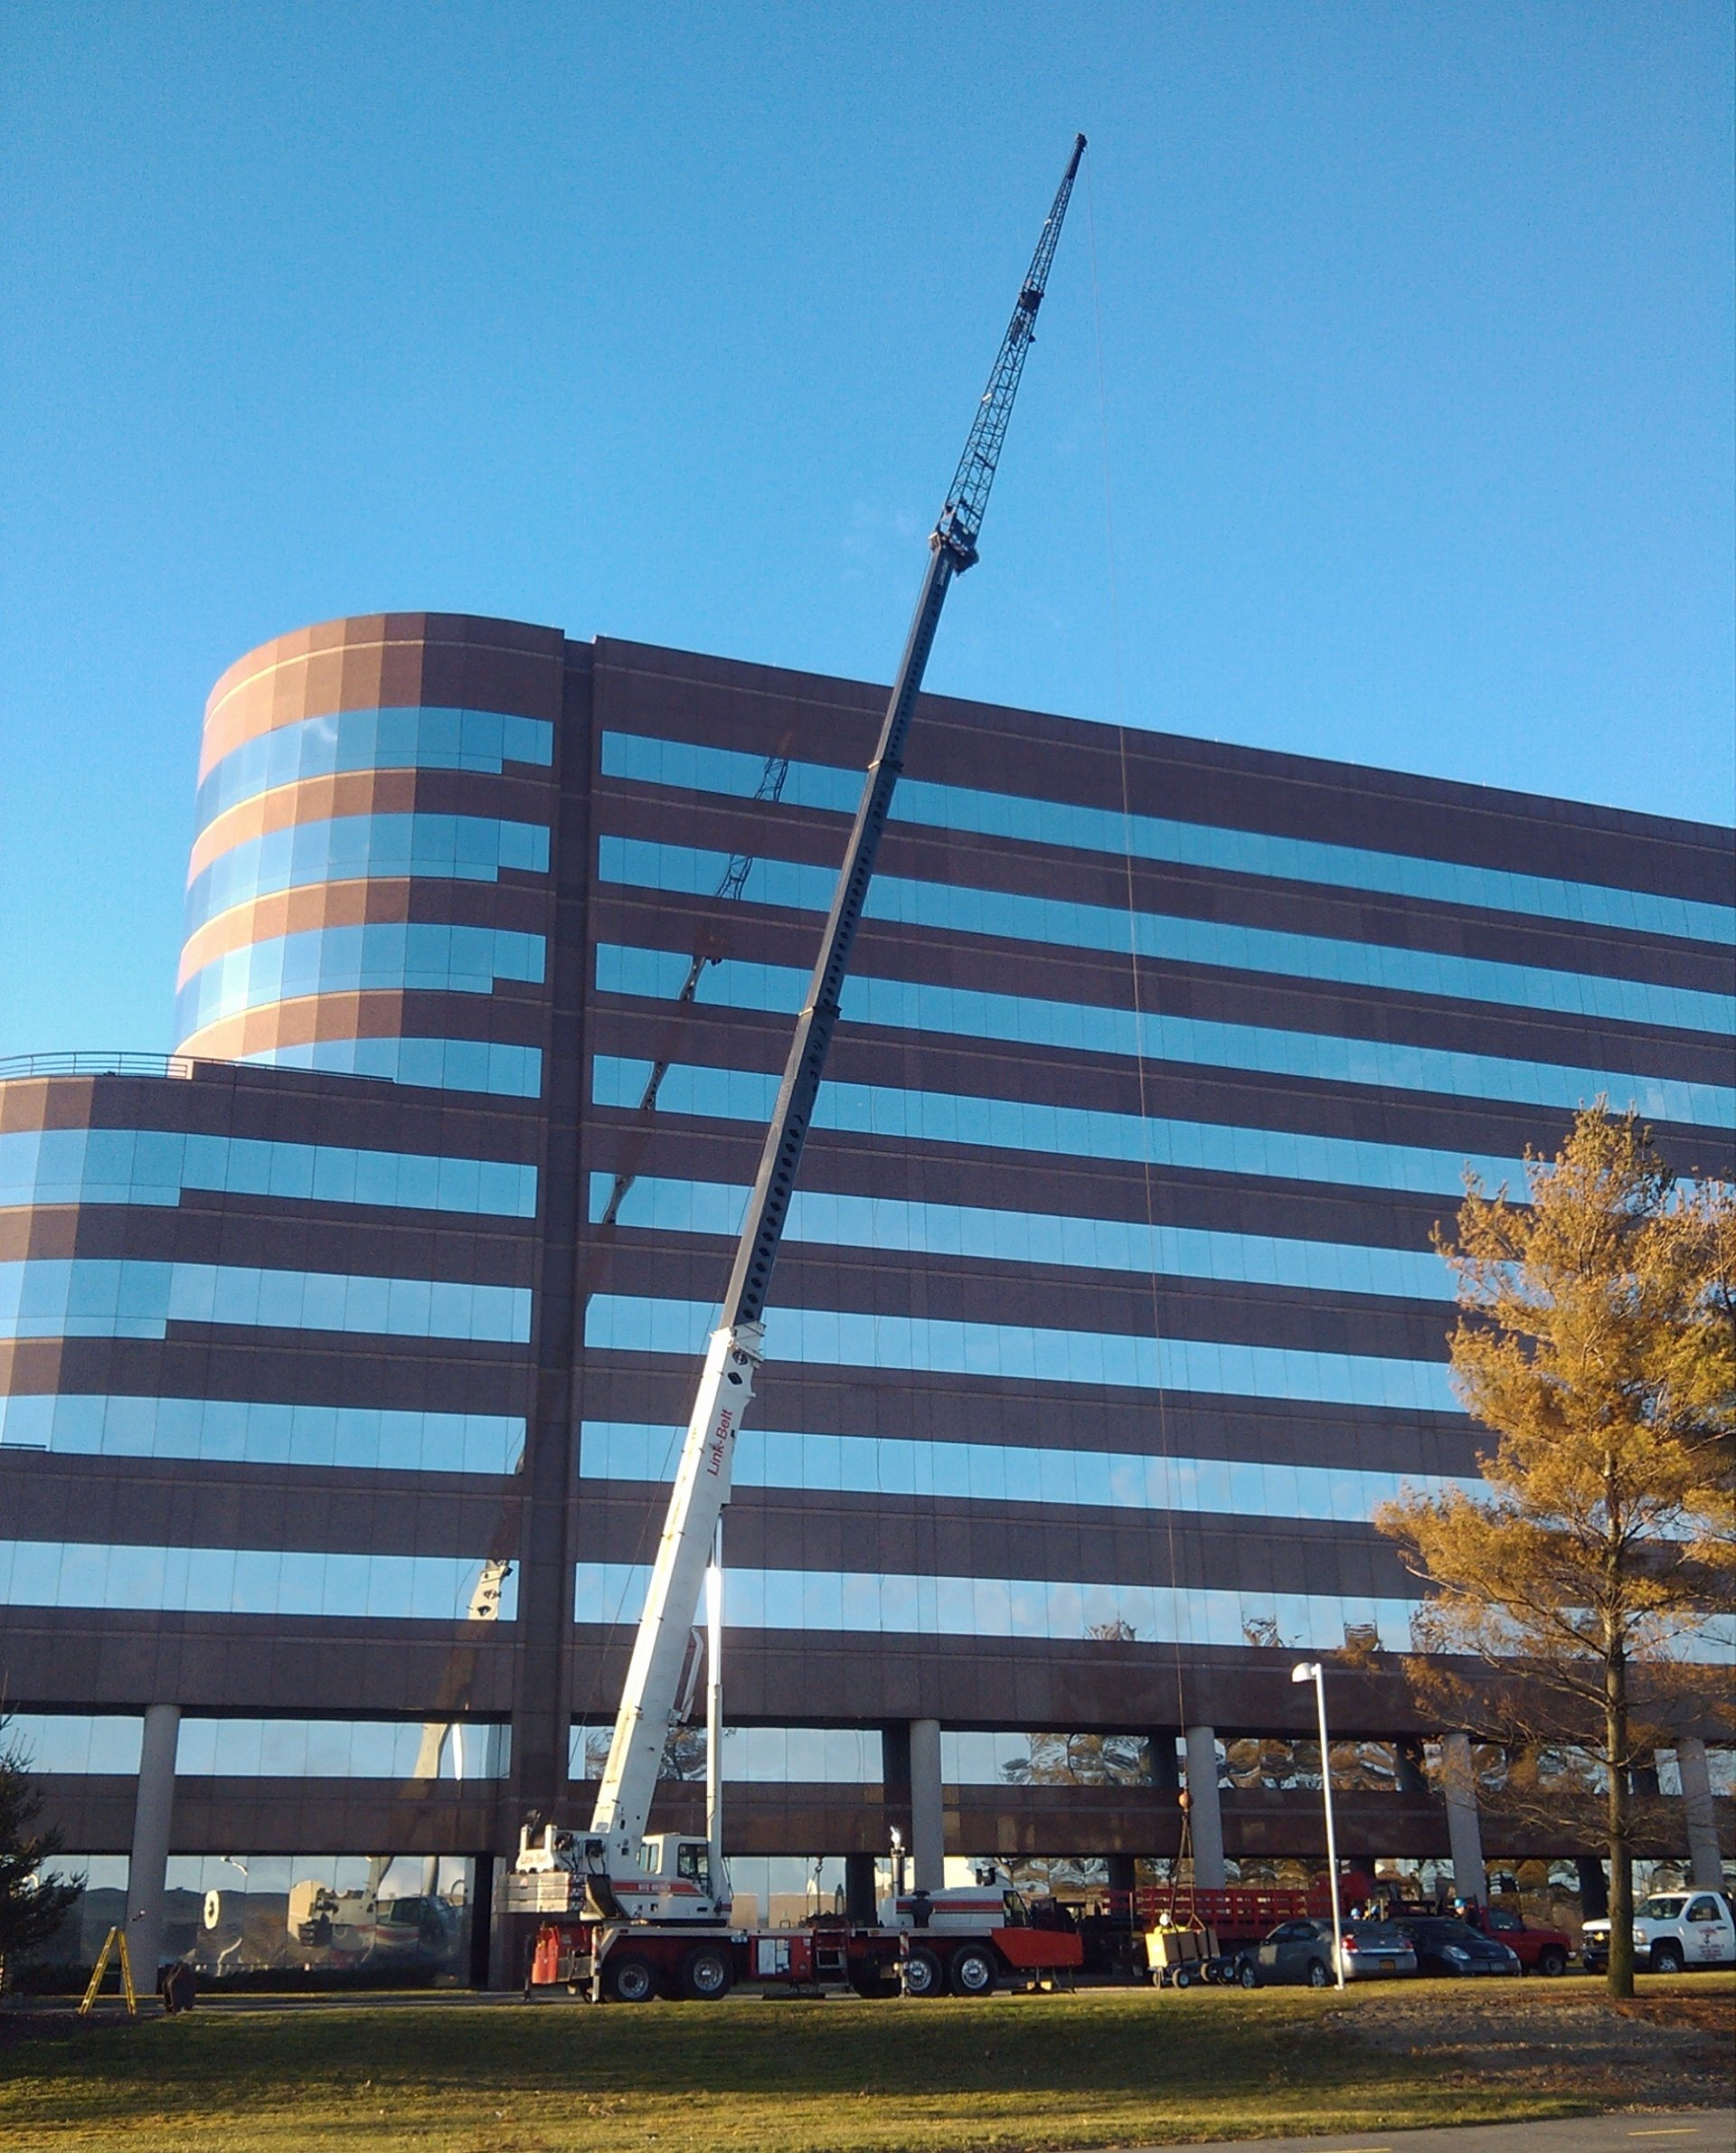 70 Ton Linkbelt Setting Rooftop Equipment On A 120' High Office Building in Uniondale